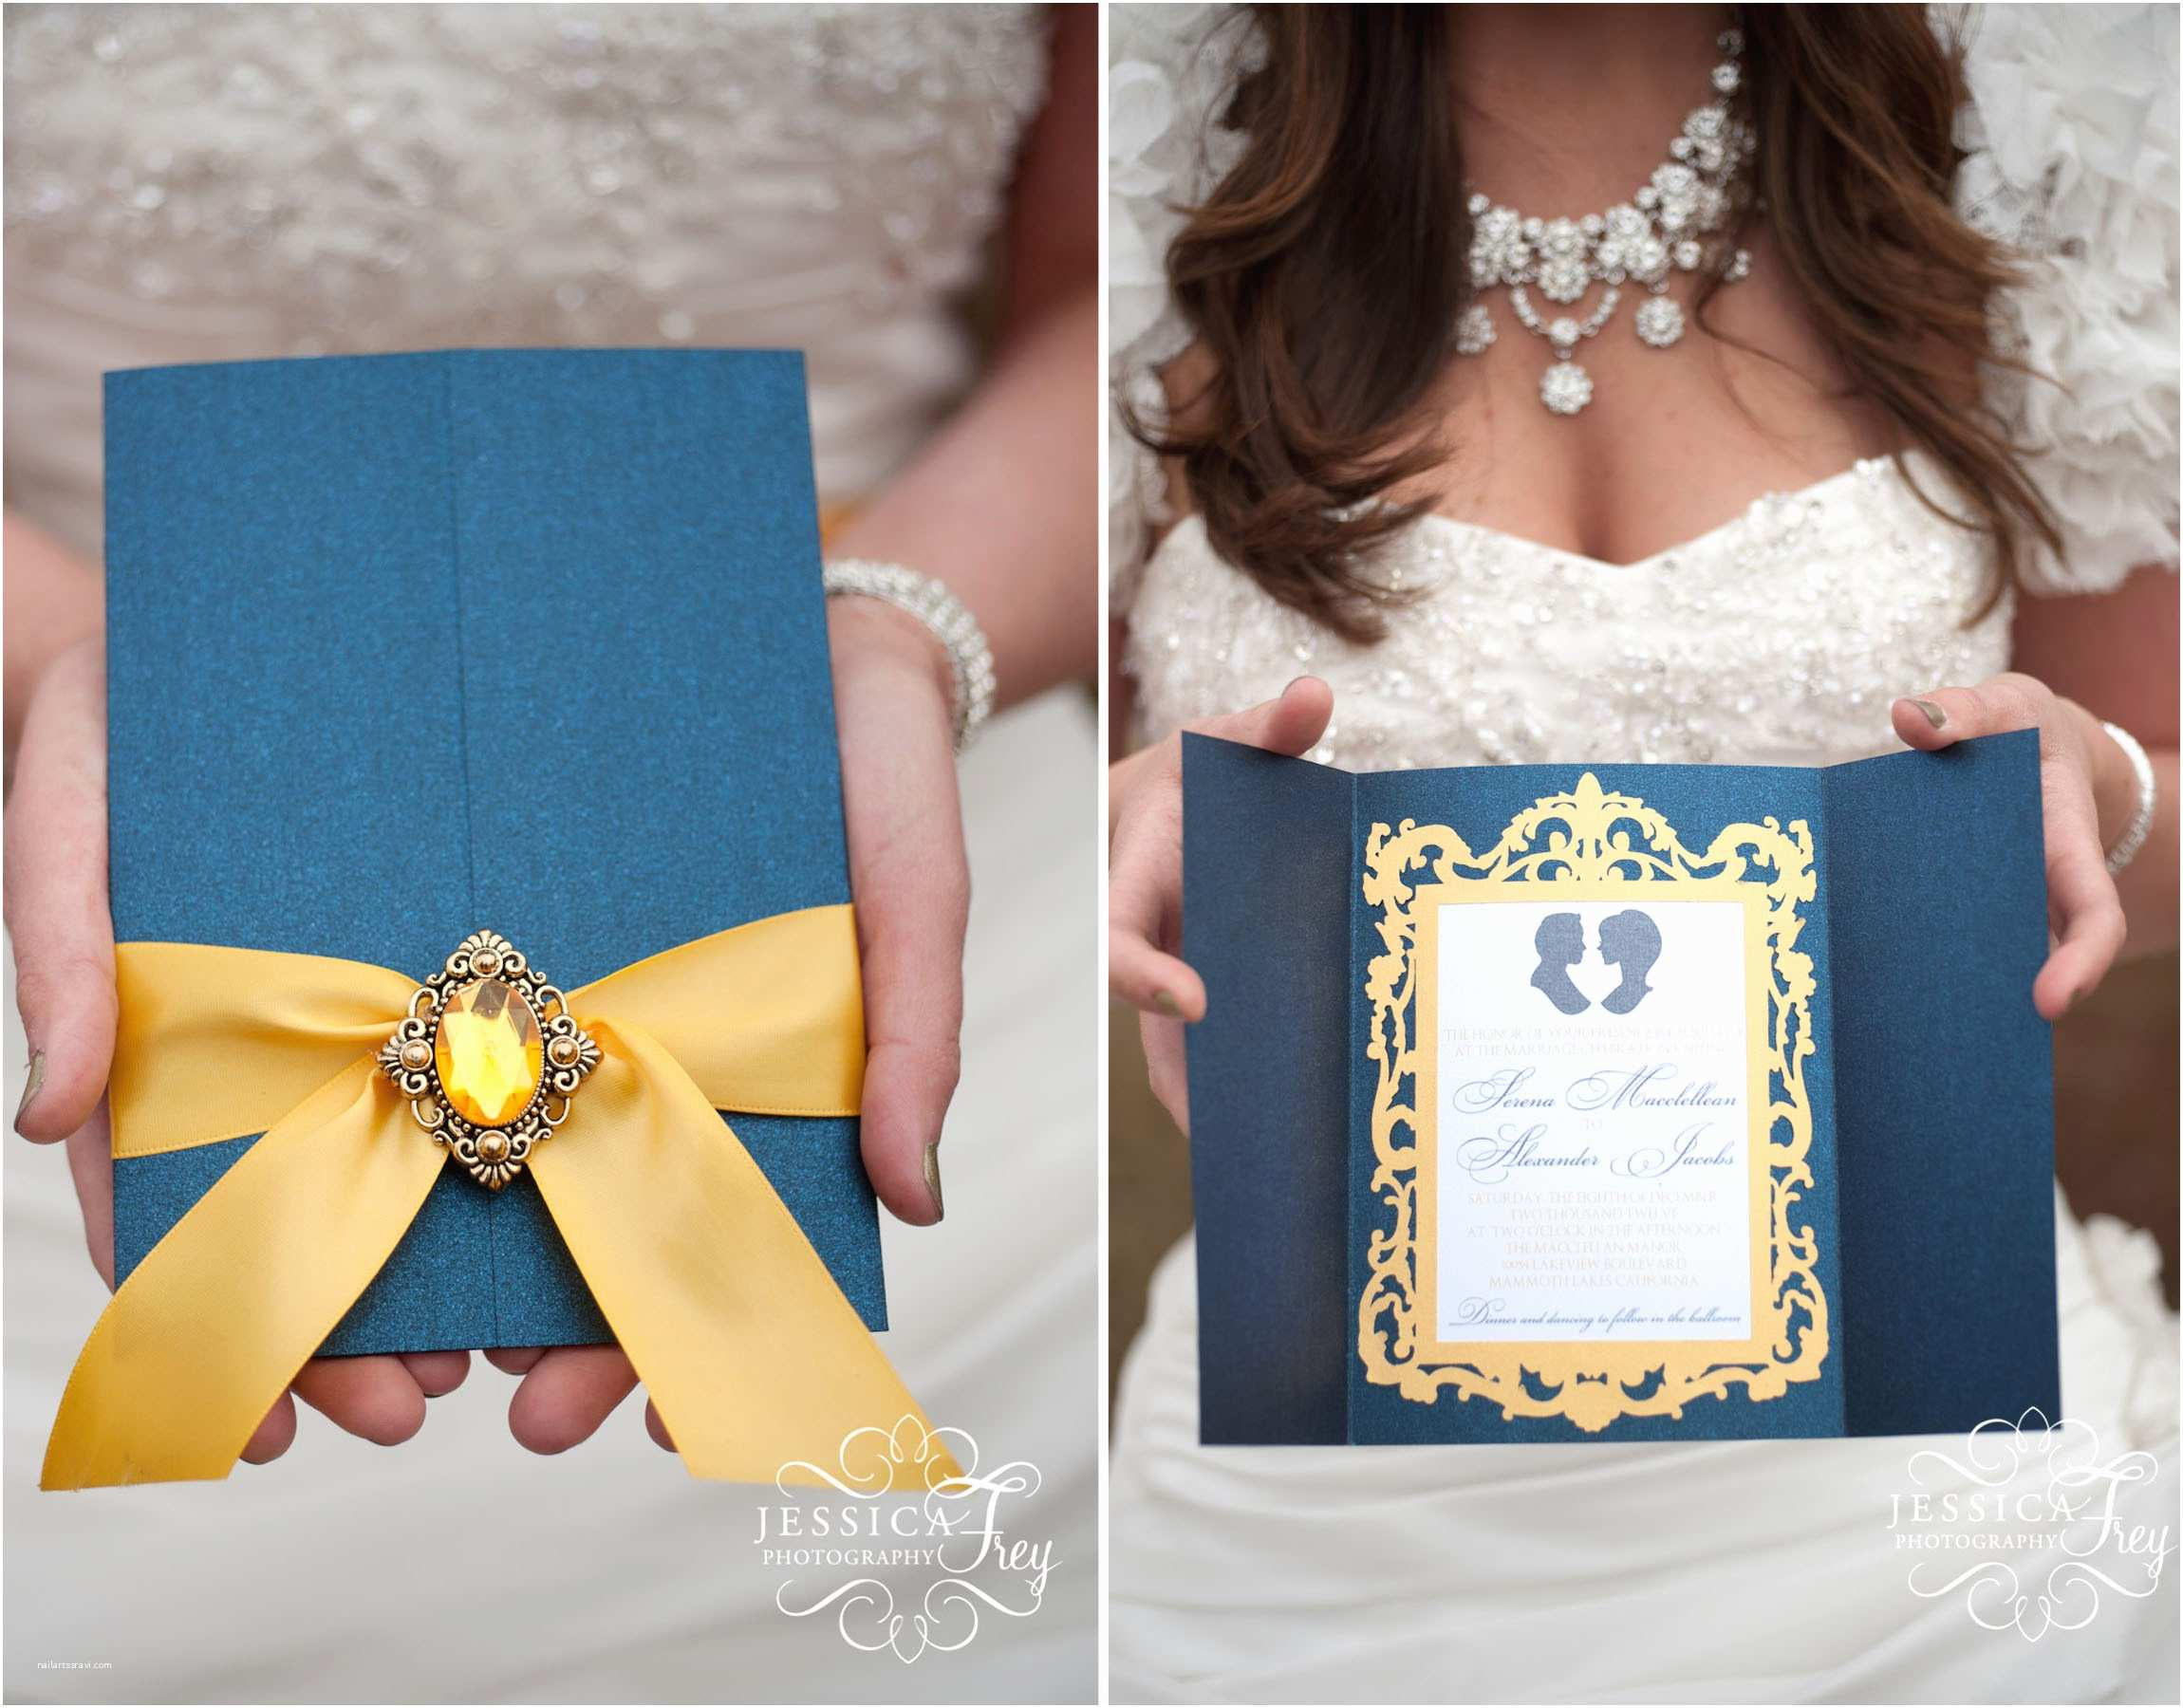 Beauty and the Beast Inspired Wedding Invitations Navy & Yellow Wedding – Inspired by Beauty & the Beast